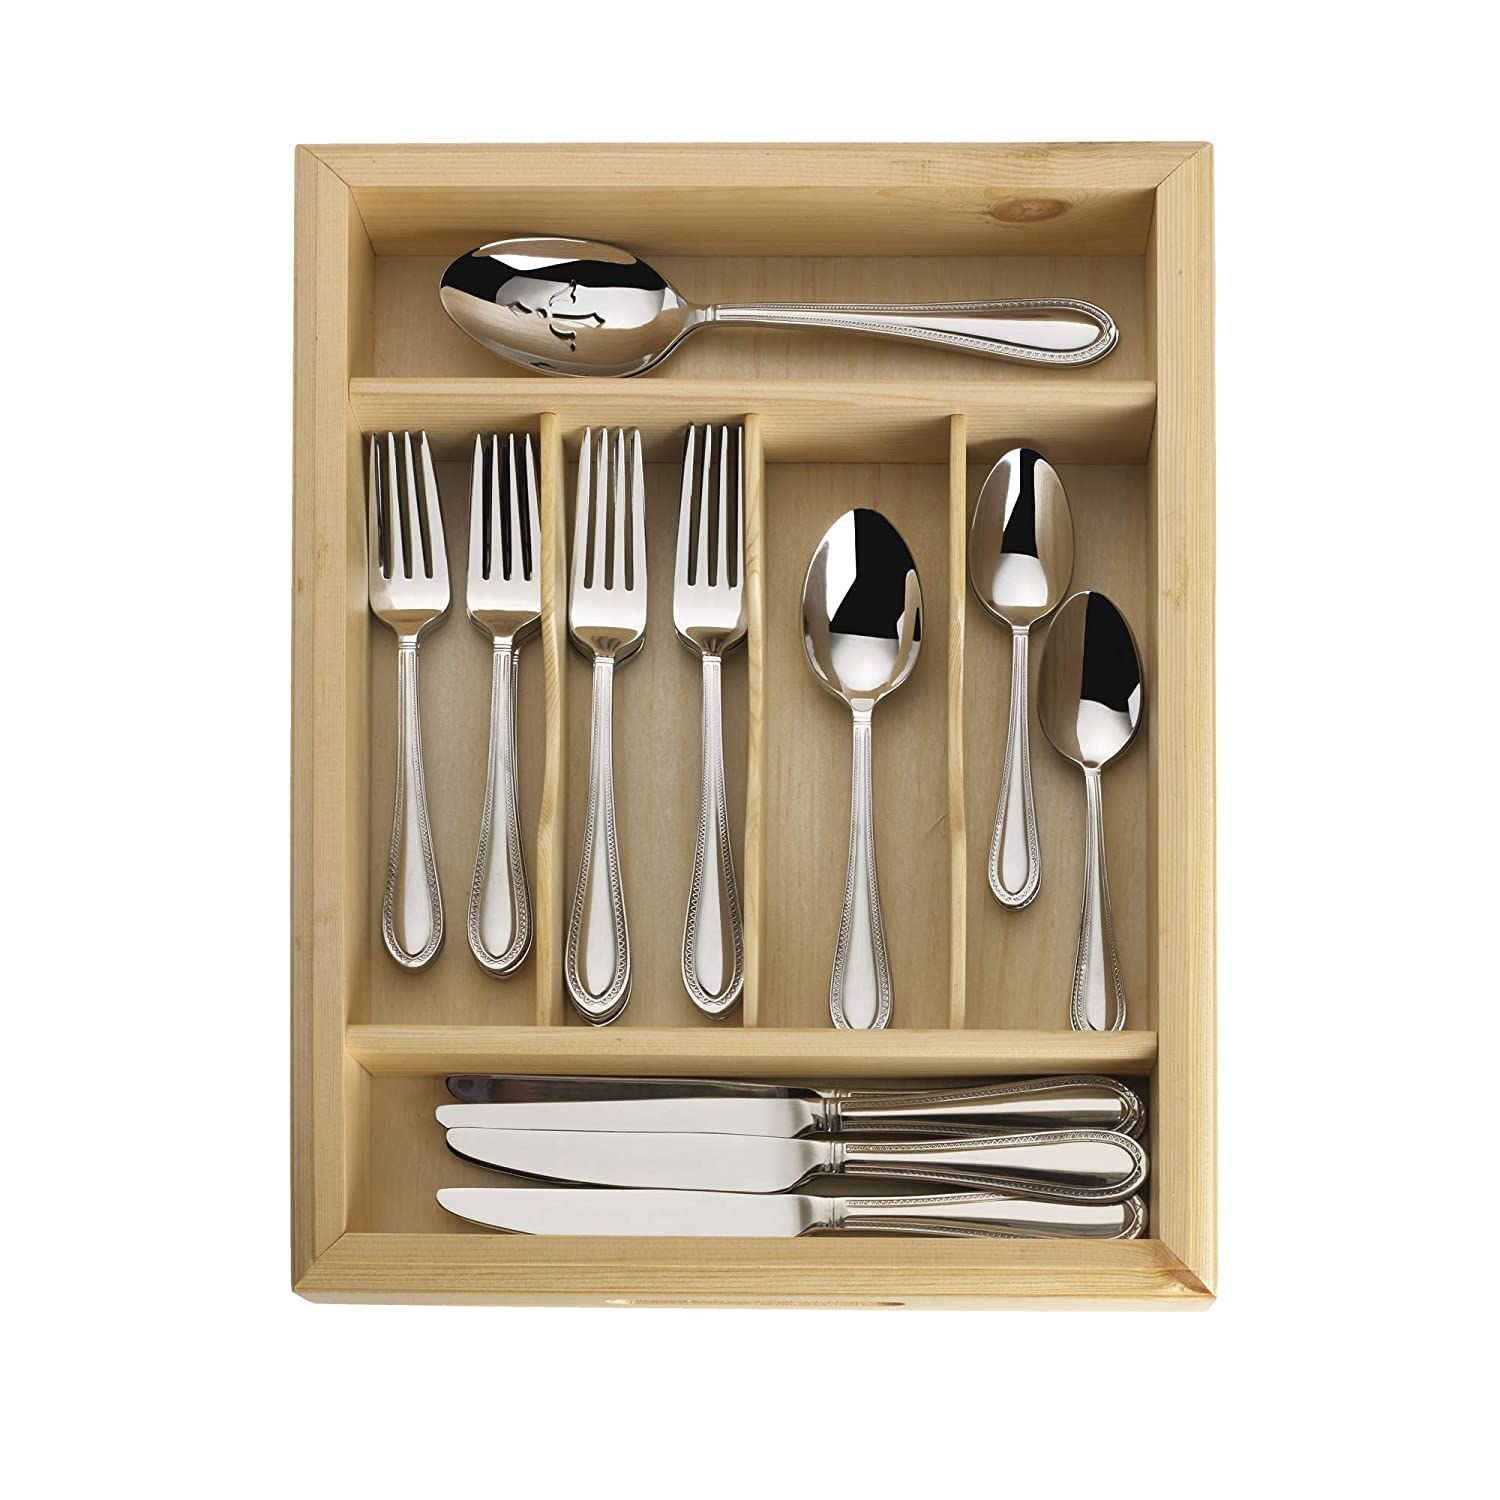 Service for 12 Mikasa Cocoa Blossom 65-Piece Stainless Steel Flatware Set with Serveware